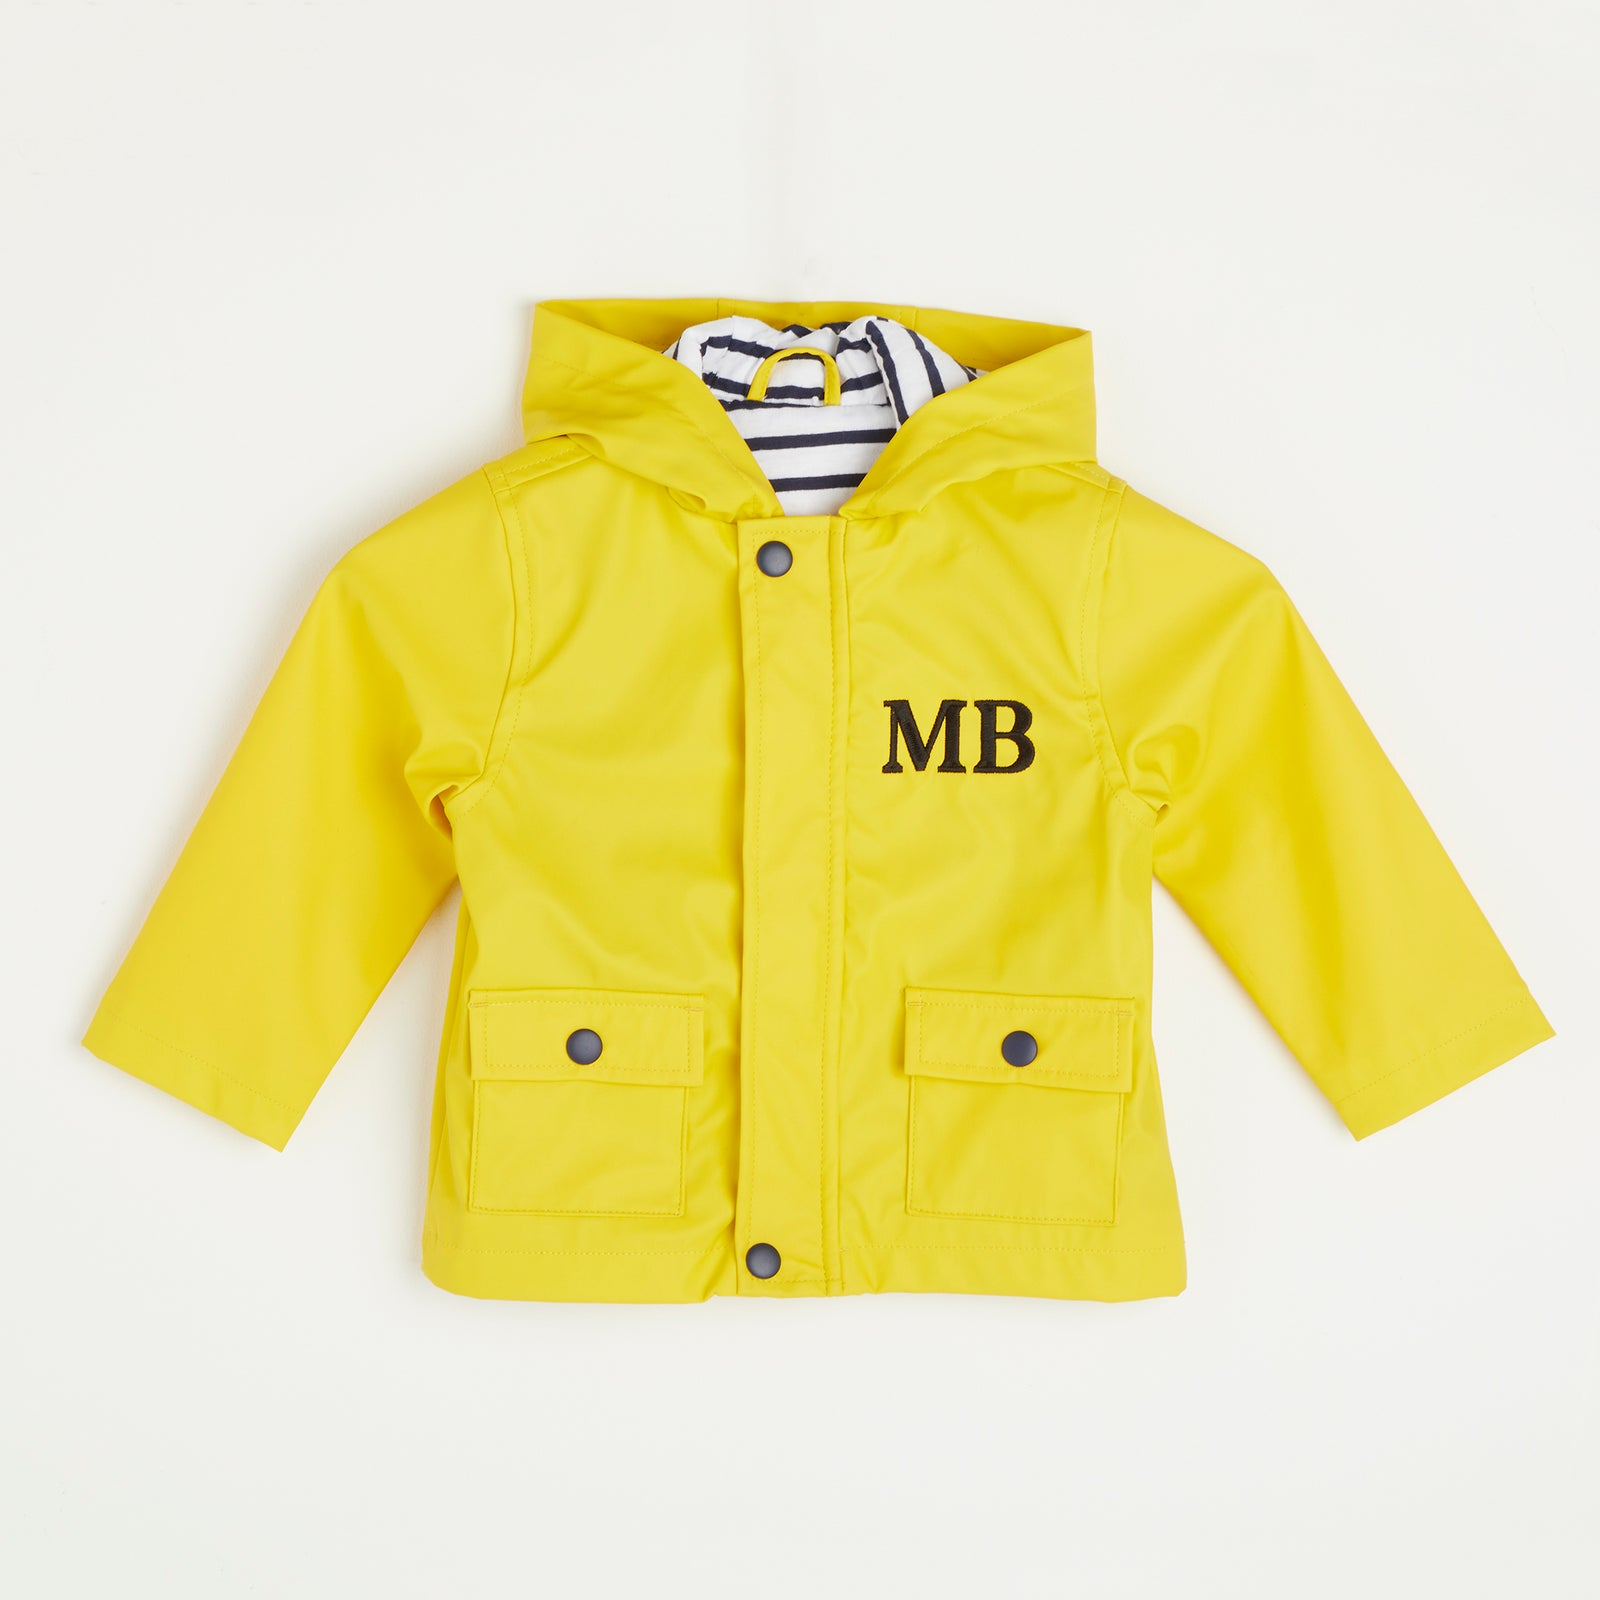 Embroidered Yellow Rain Jacket